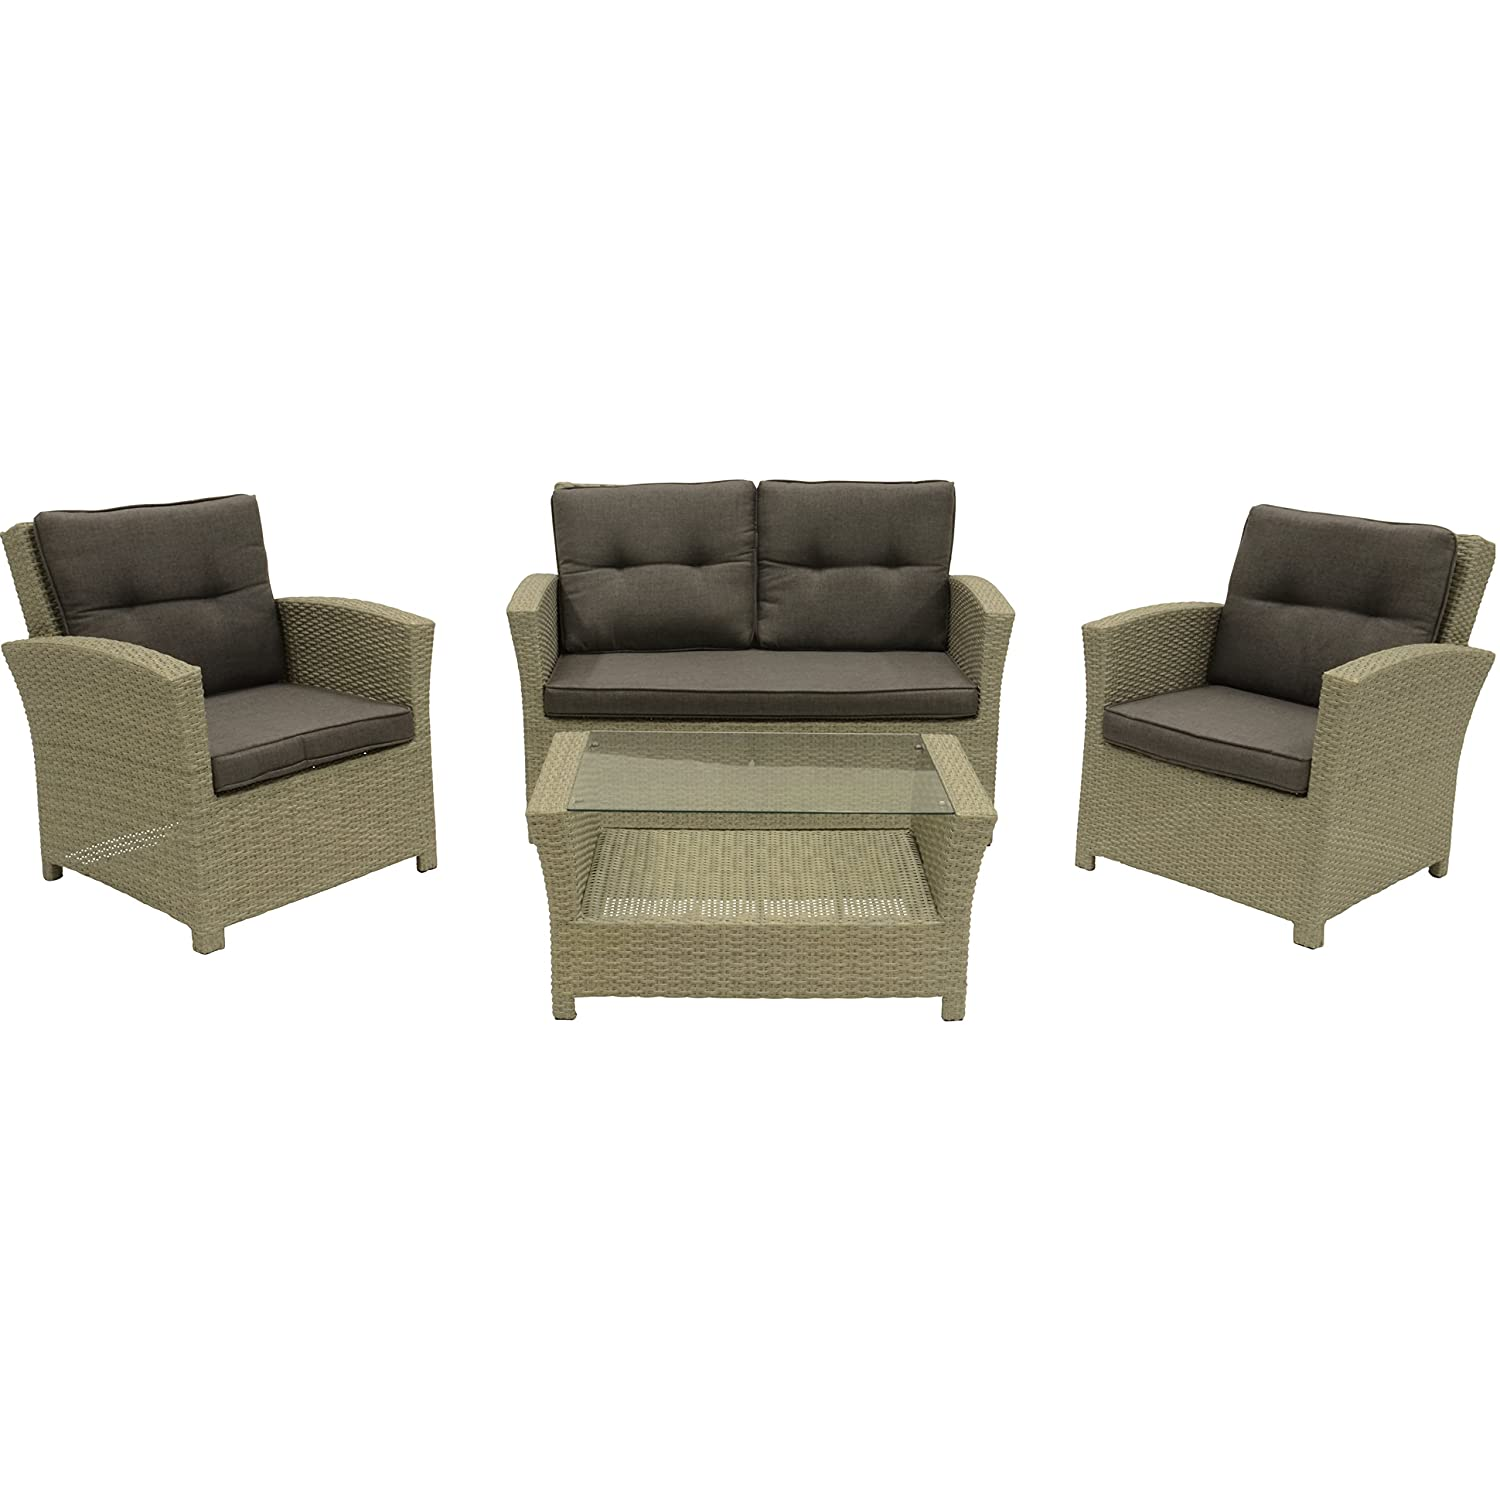 loungeset jazz pebble gartenm bel set 4 teilig 2 st hle sofa tisch mit glasplatte g nstig kaufen. Black Bedroom Furniture Sets. Home Design Ideas